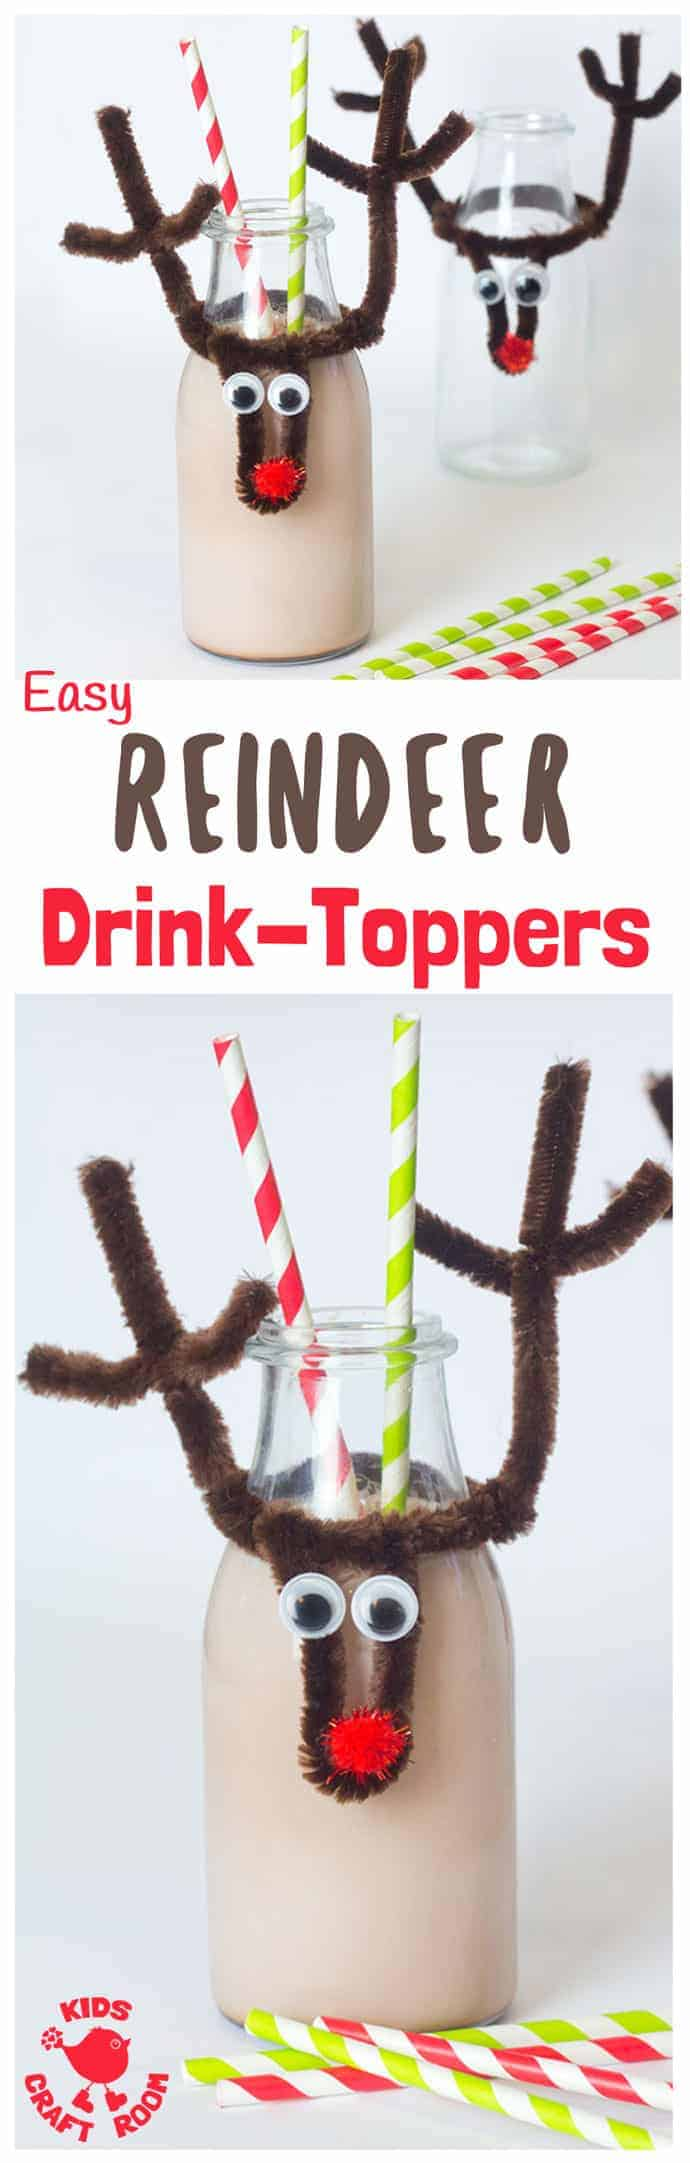 REINDEER CHRISTMAS BOTTLE TOPS This easy reindeer craft makes bottles fun and festive. Pop them on kids milk bottles, fizzy pop or even wine for the grown ups! Make them wider for glasses too. A fun Christmas craft for kids. #reindeer #rudolf #christmas #christmascraft #diy #bottletops #kidscrafts #christmasideas #ornaments #kidscraftroom